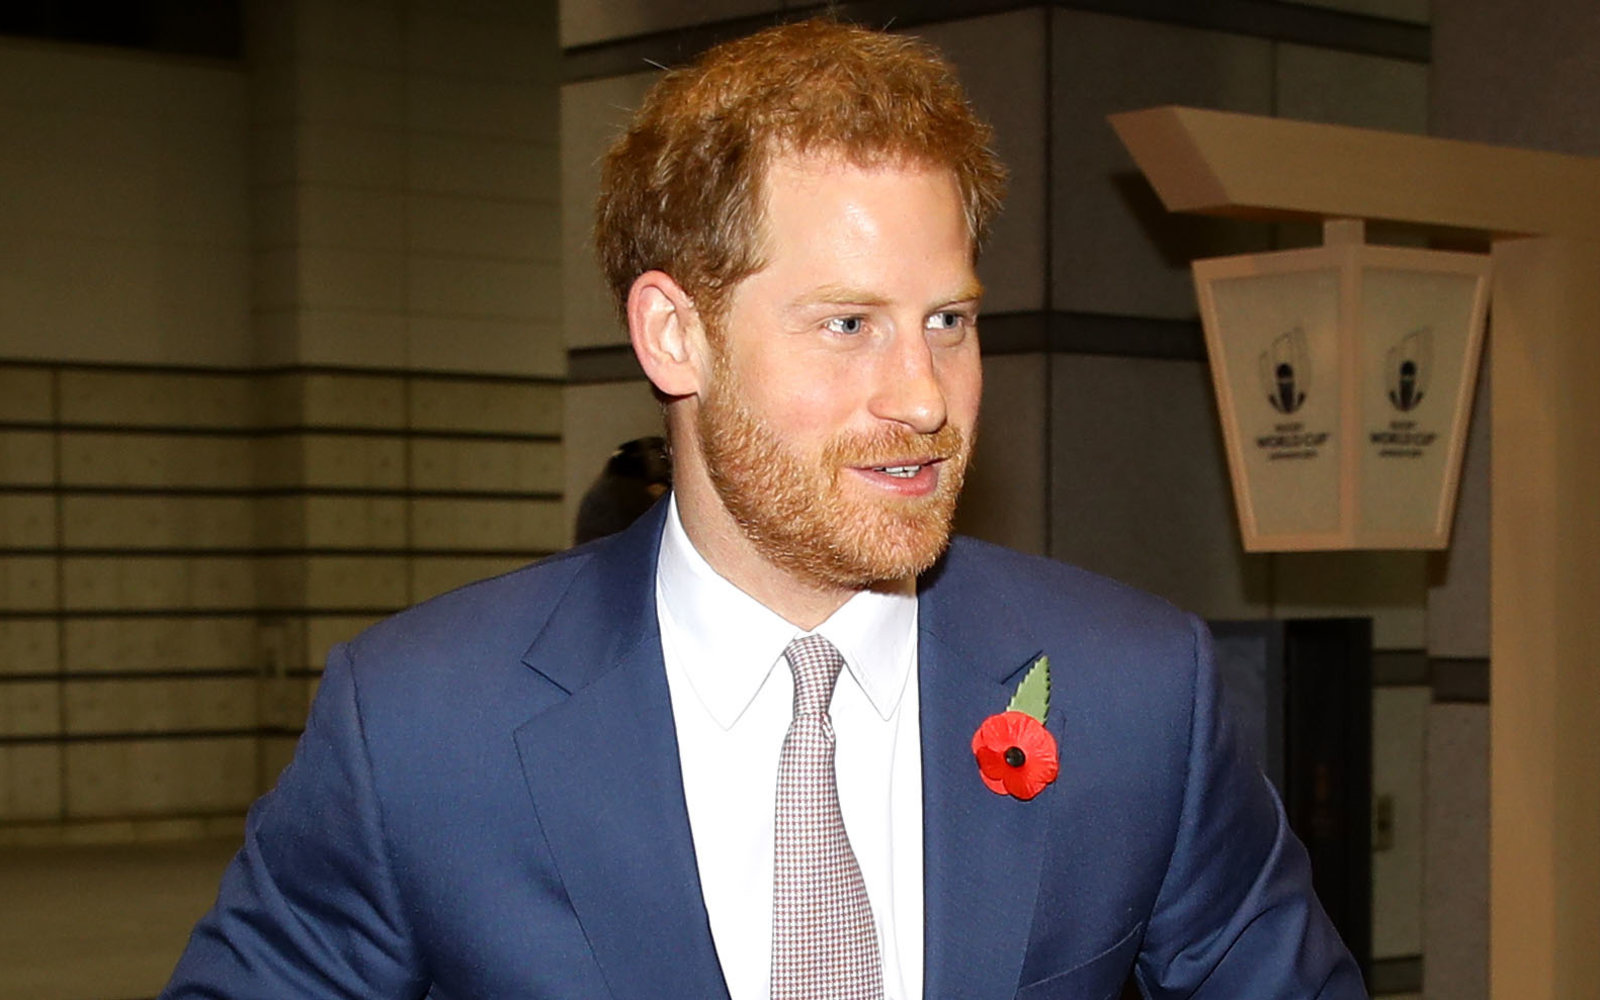 Ever the dedicated sports fan, Prince Harry flies commercial to catch rugby game